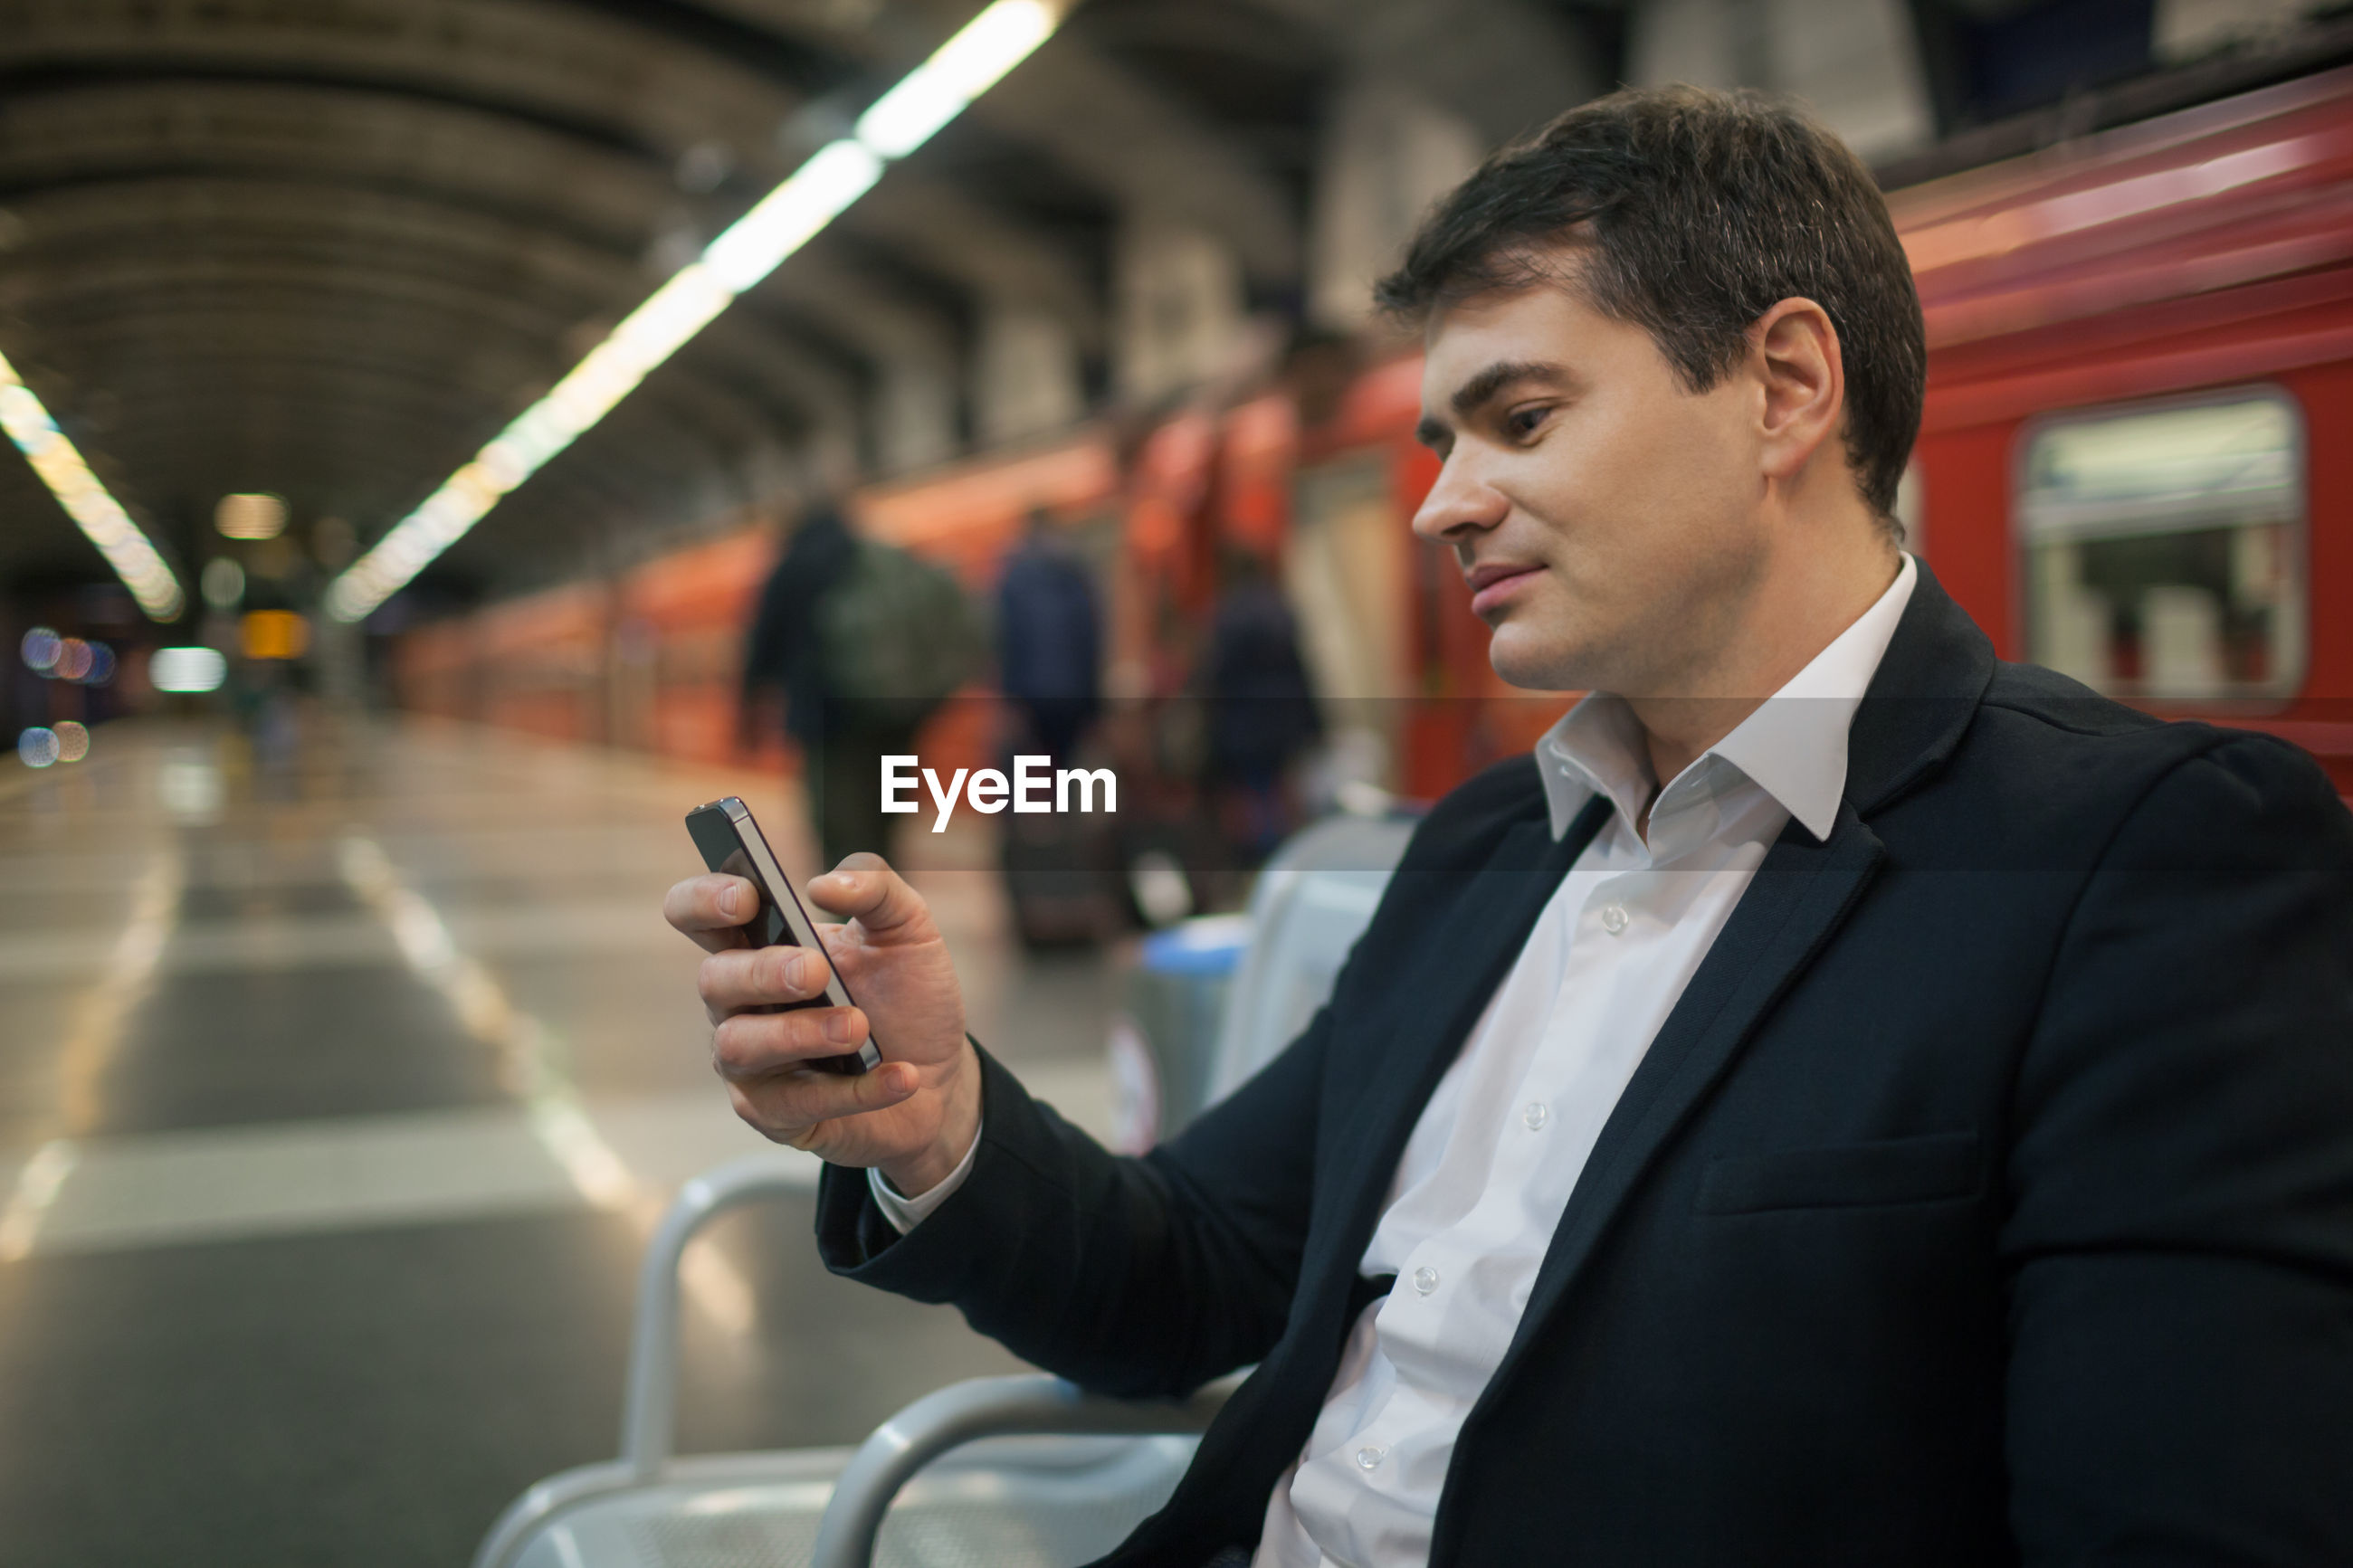 Businessman using mobile phone while sitting at subway station